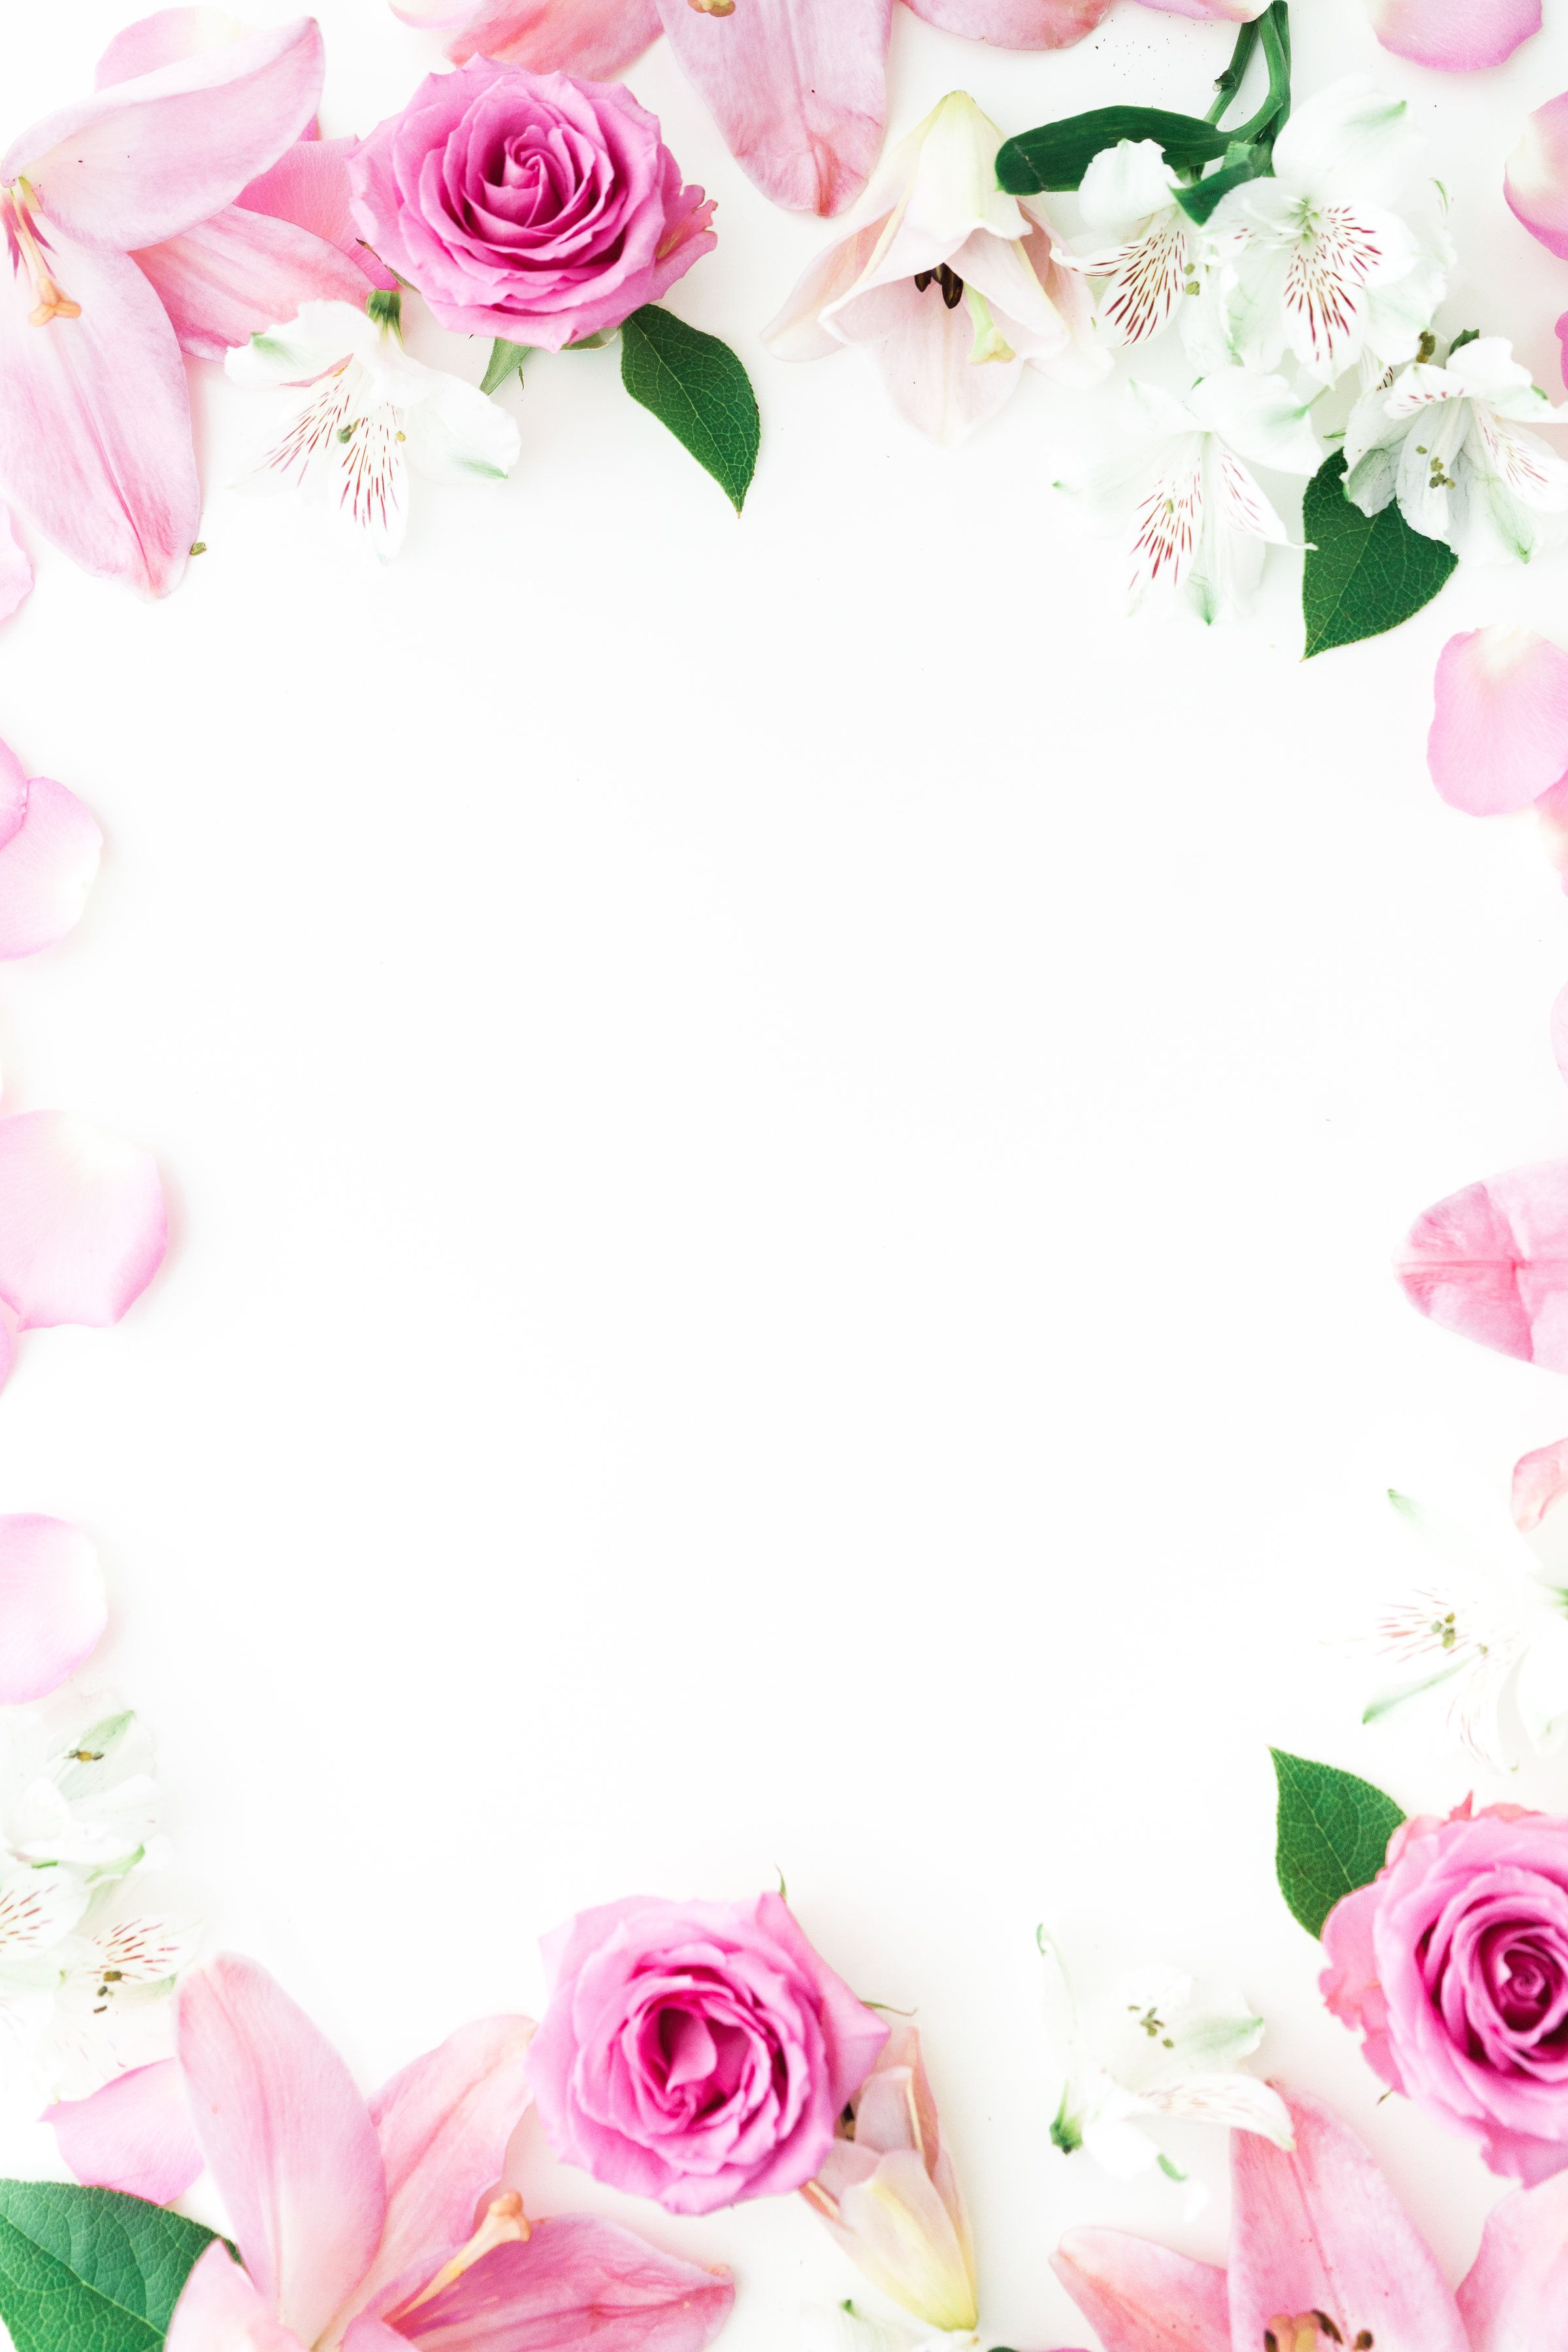 Pink Flower Border If You Love Pink Flowers Then This Is A Perfect Floral Frame To Download And Use For All Your Creative Projects